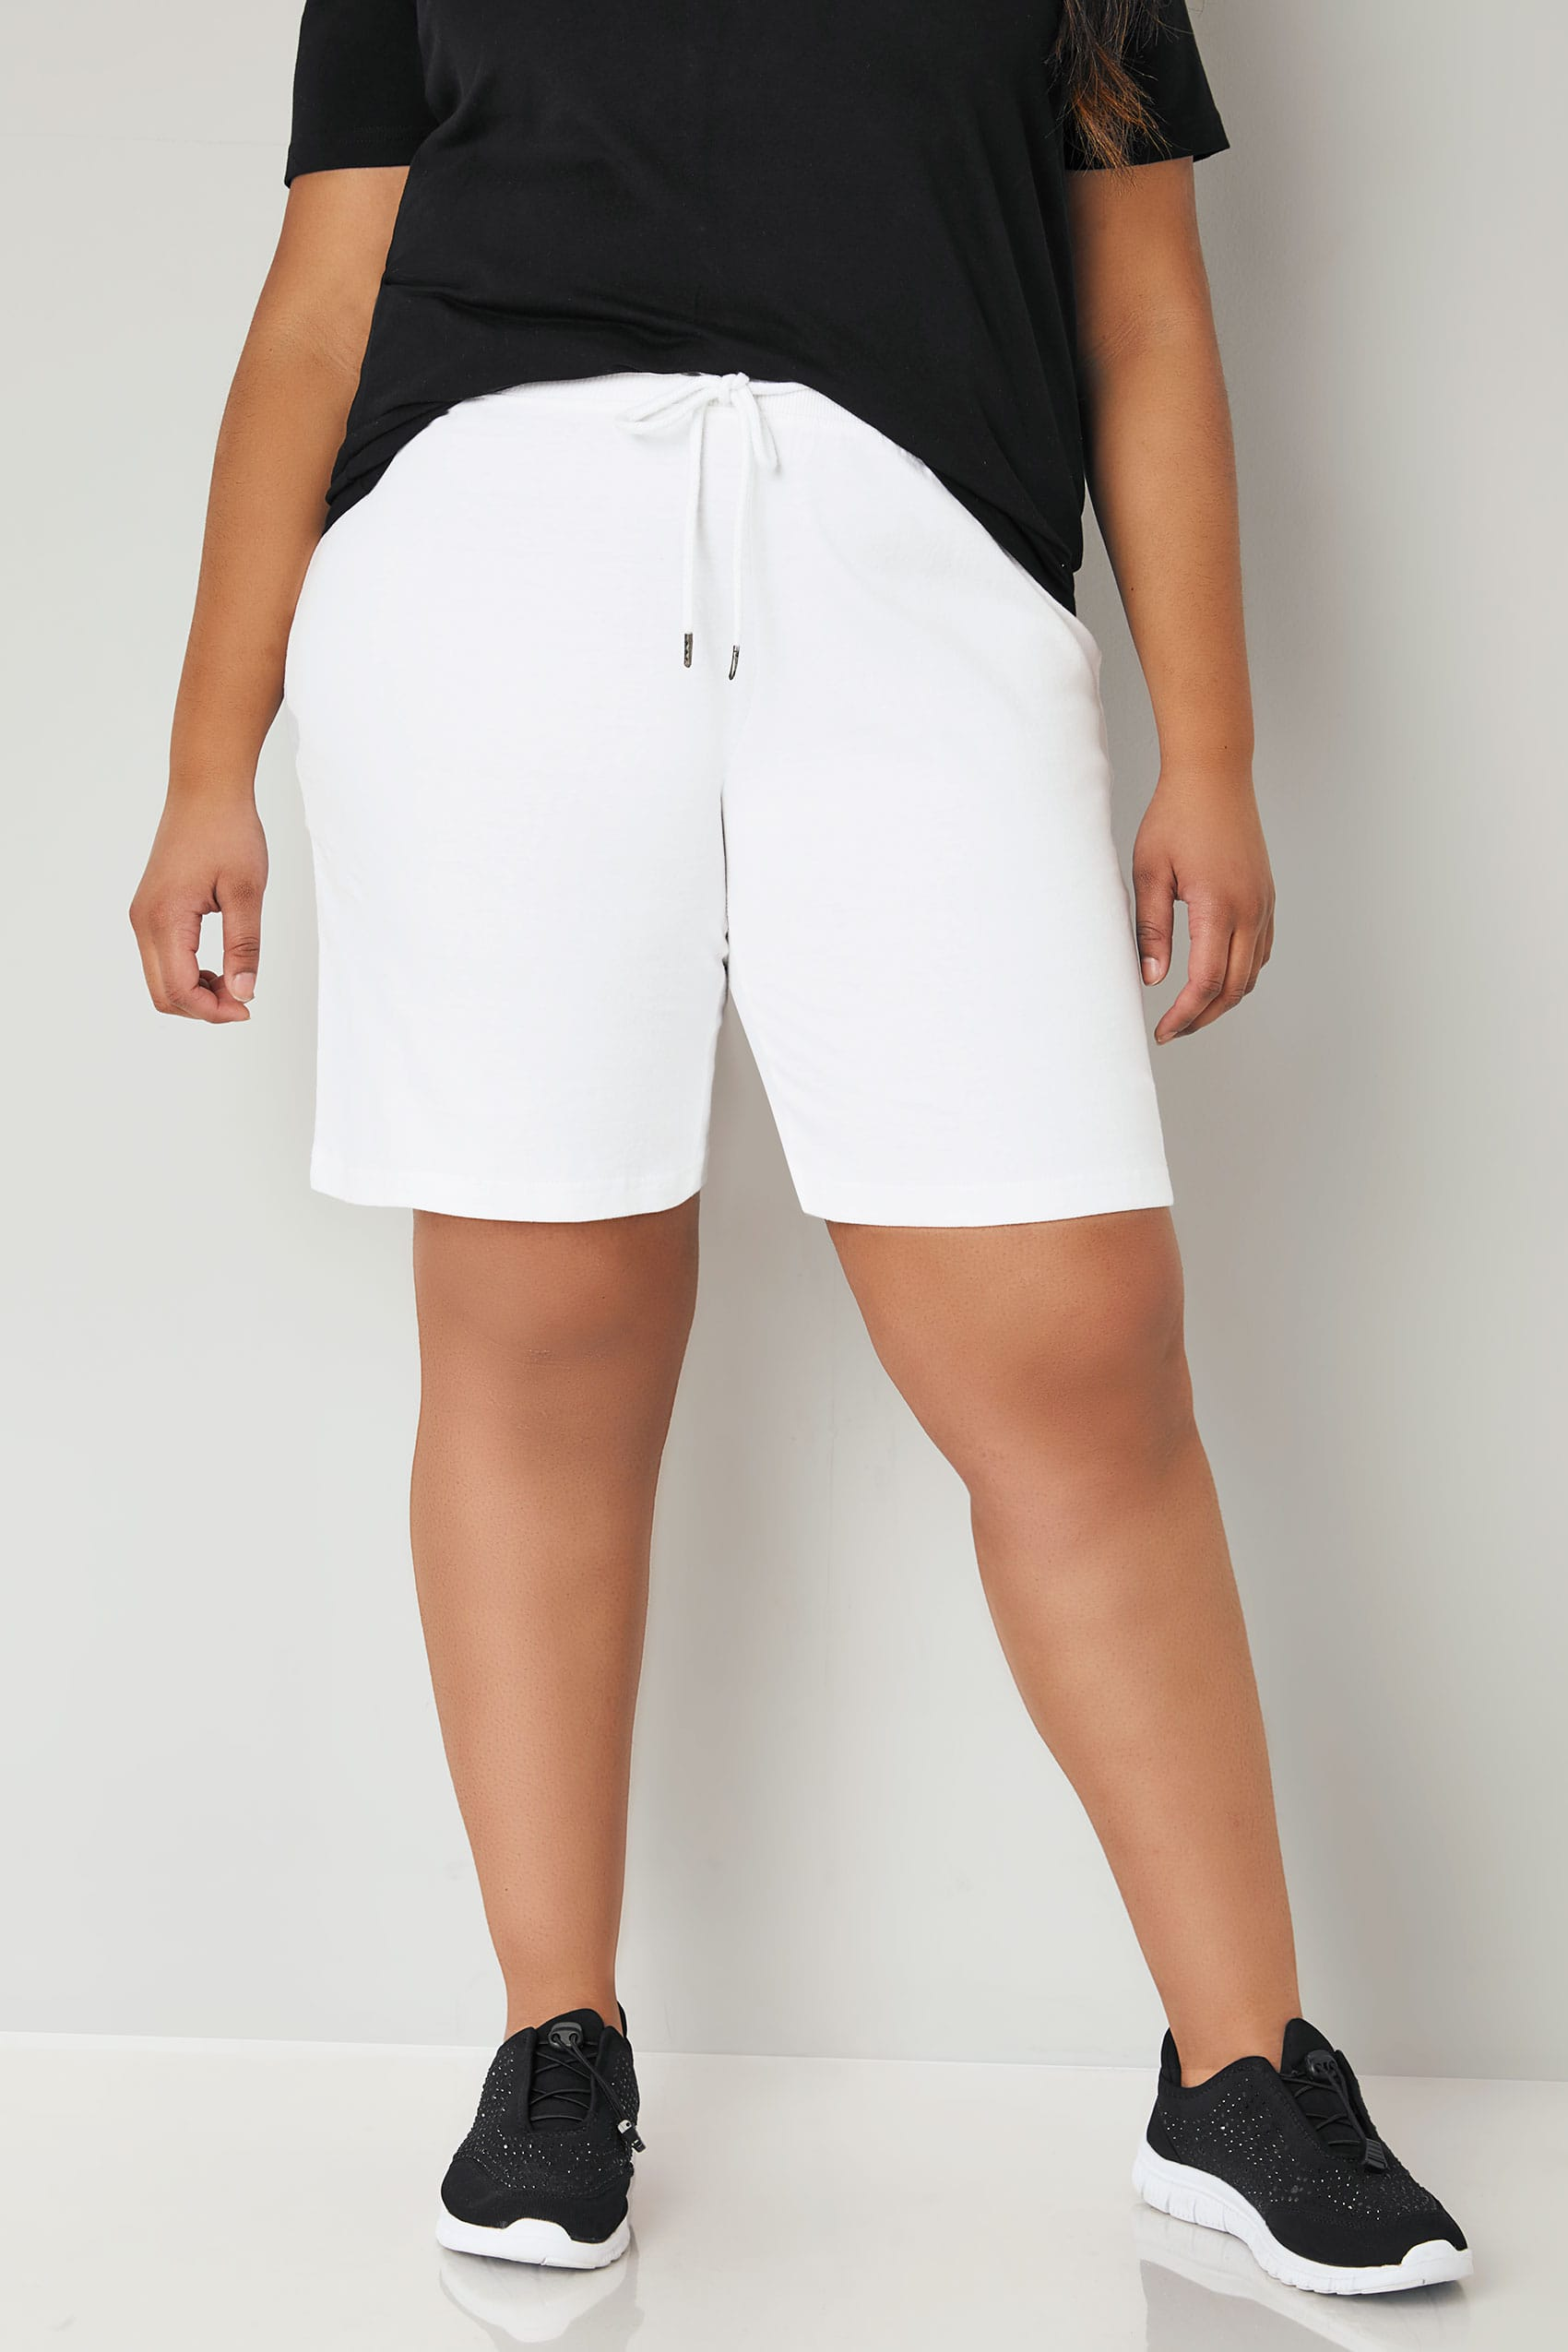 white jersey shorts with elasticated waistband plus size 16 to 36. Black Bedroom Furniture Sets. Home Design Ideas